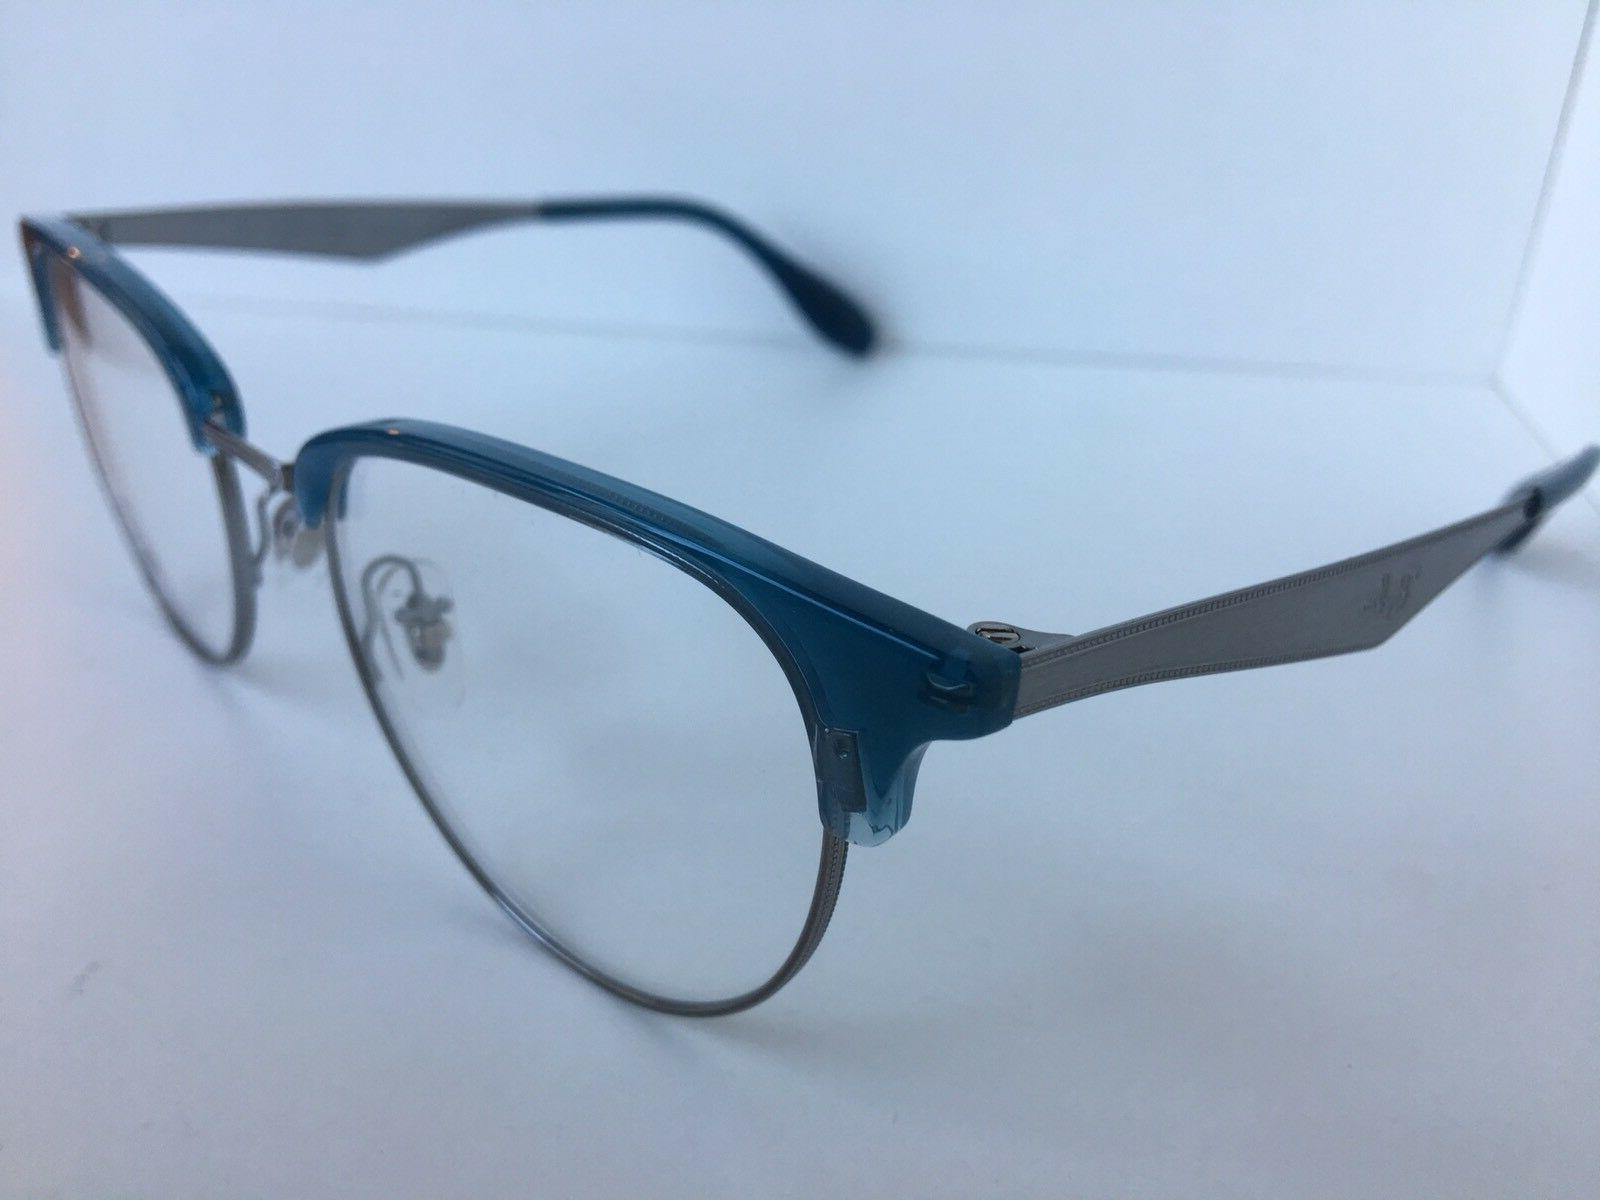 New Ray-Ban 9663 3429 51mm Clubmaster